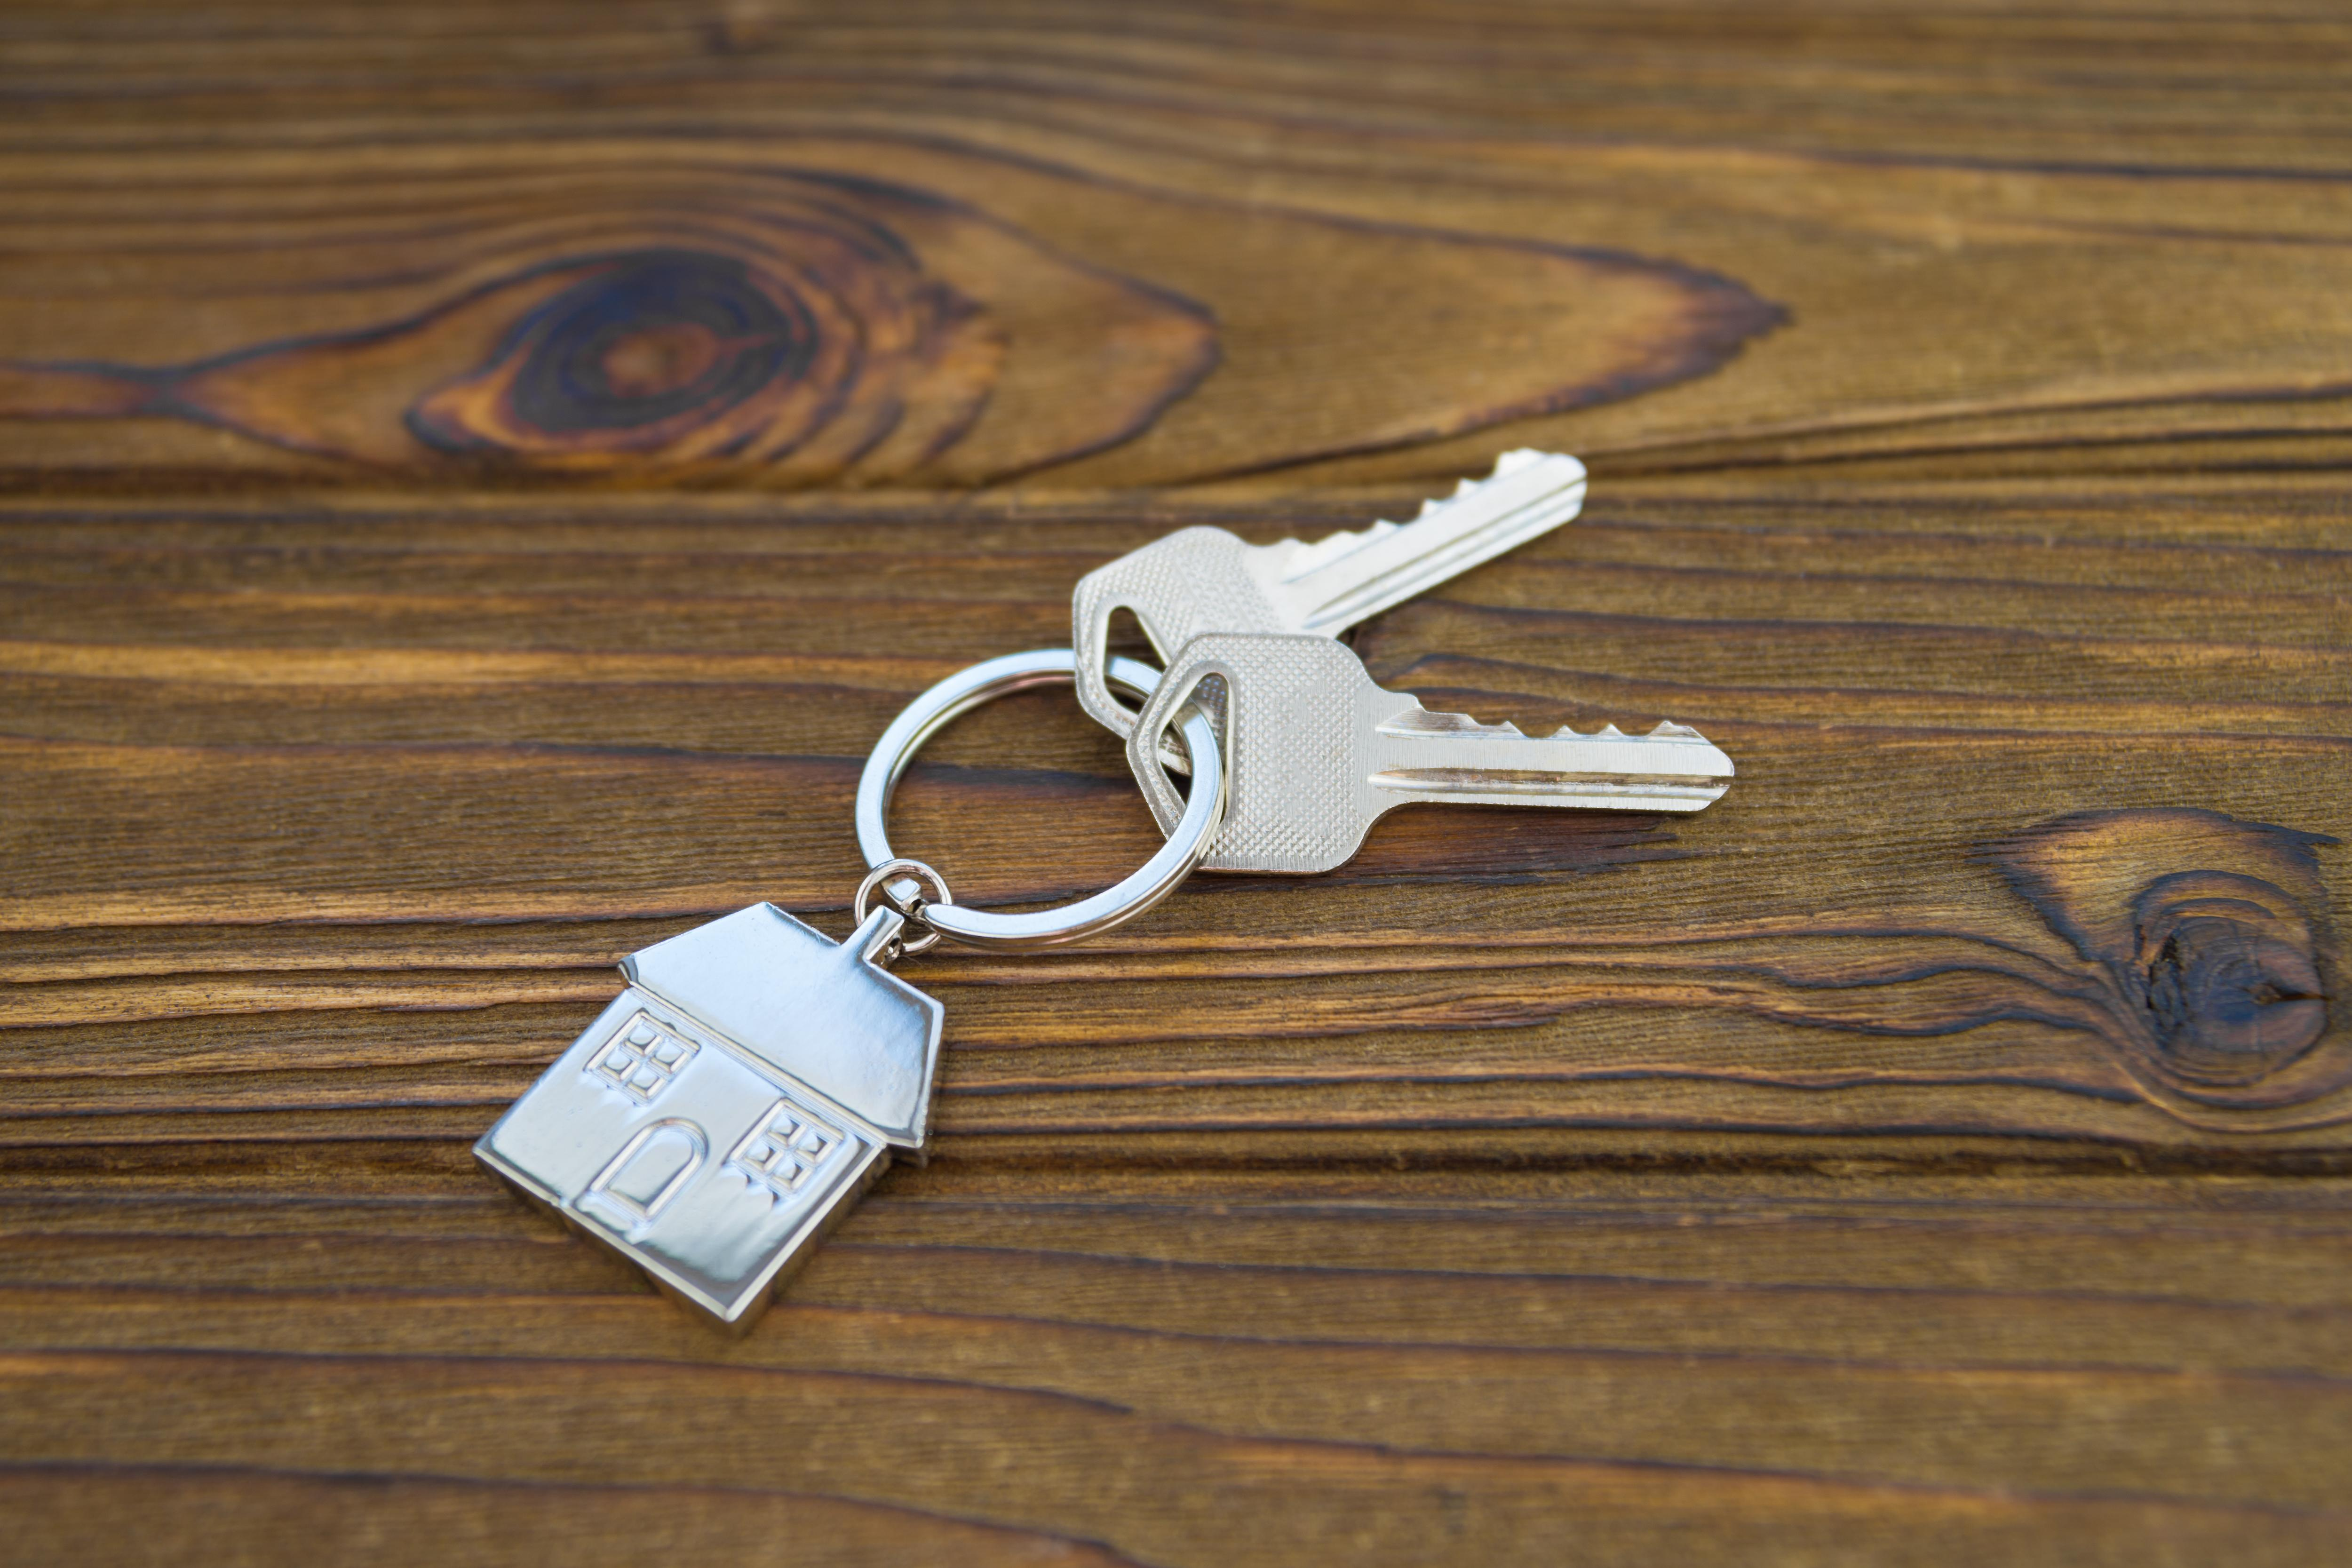 Flip this house: How Zillow helps sellers offload homes without the stress